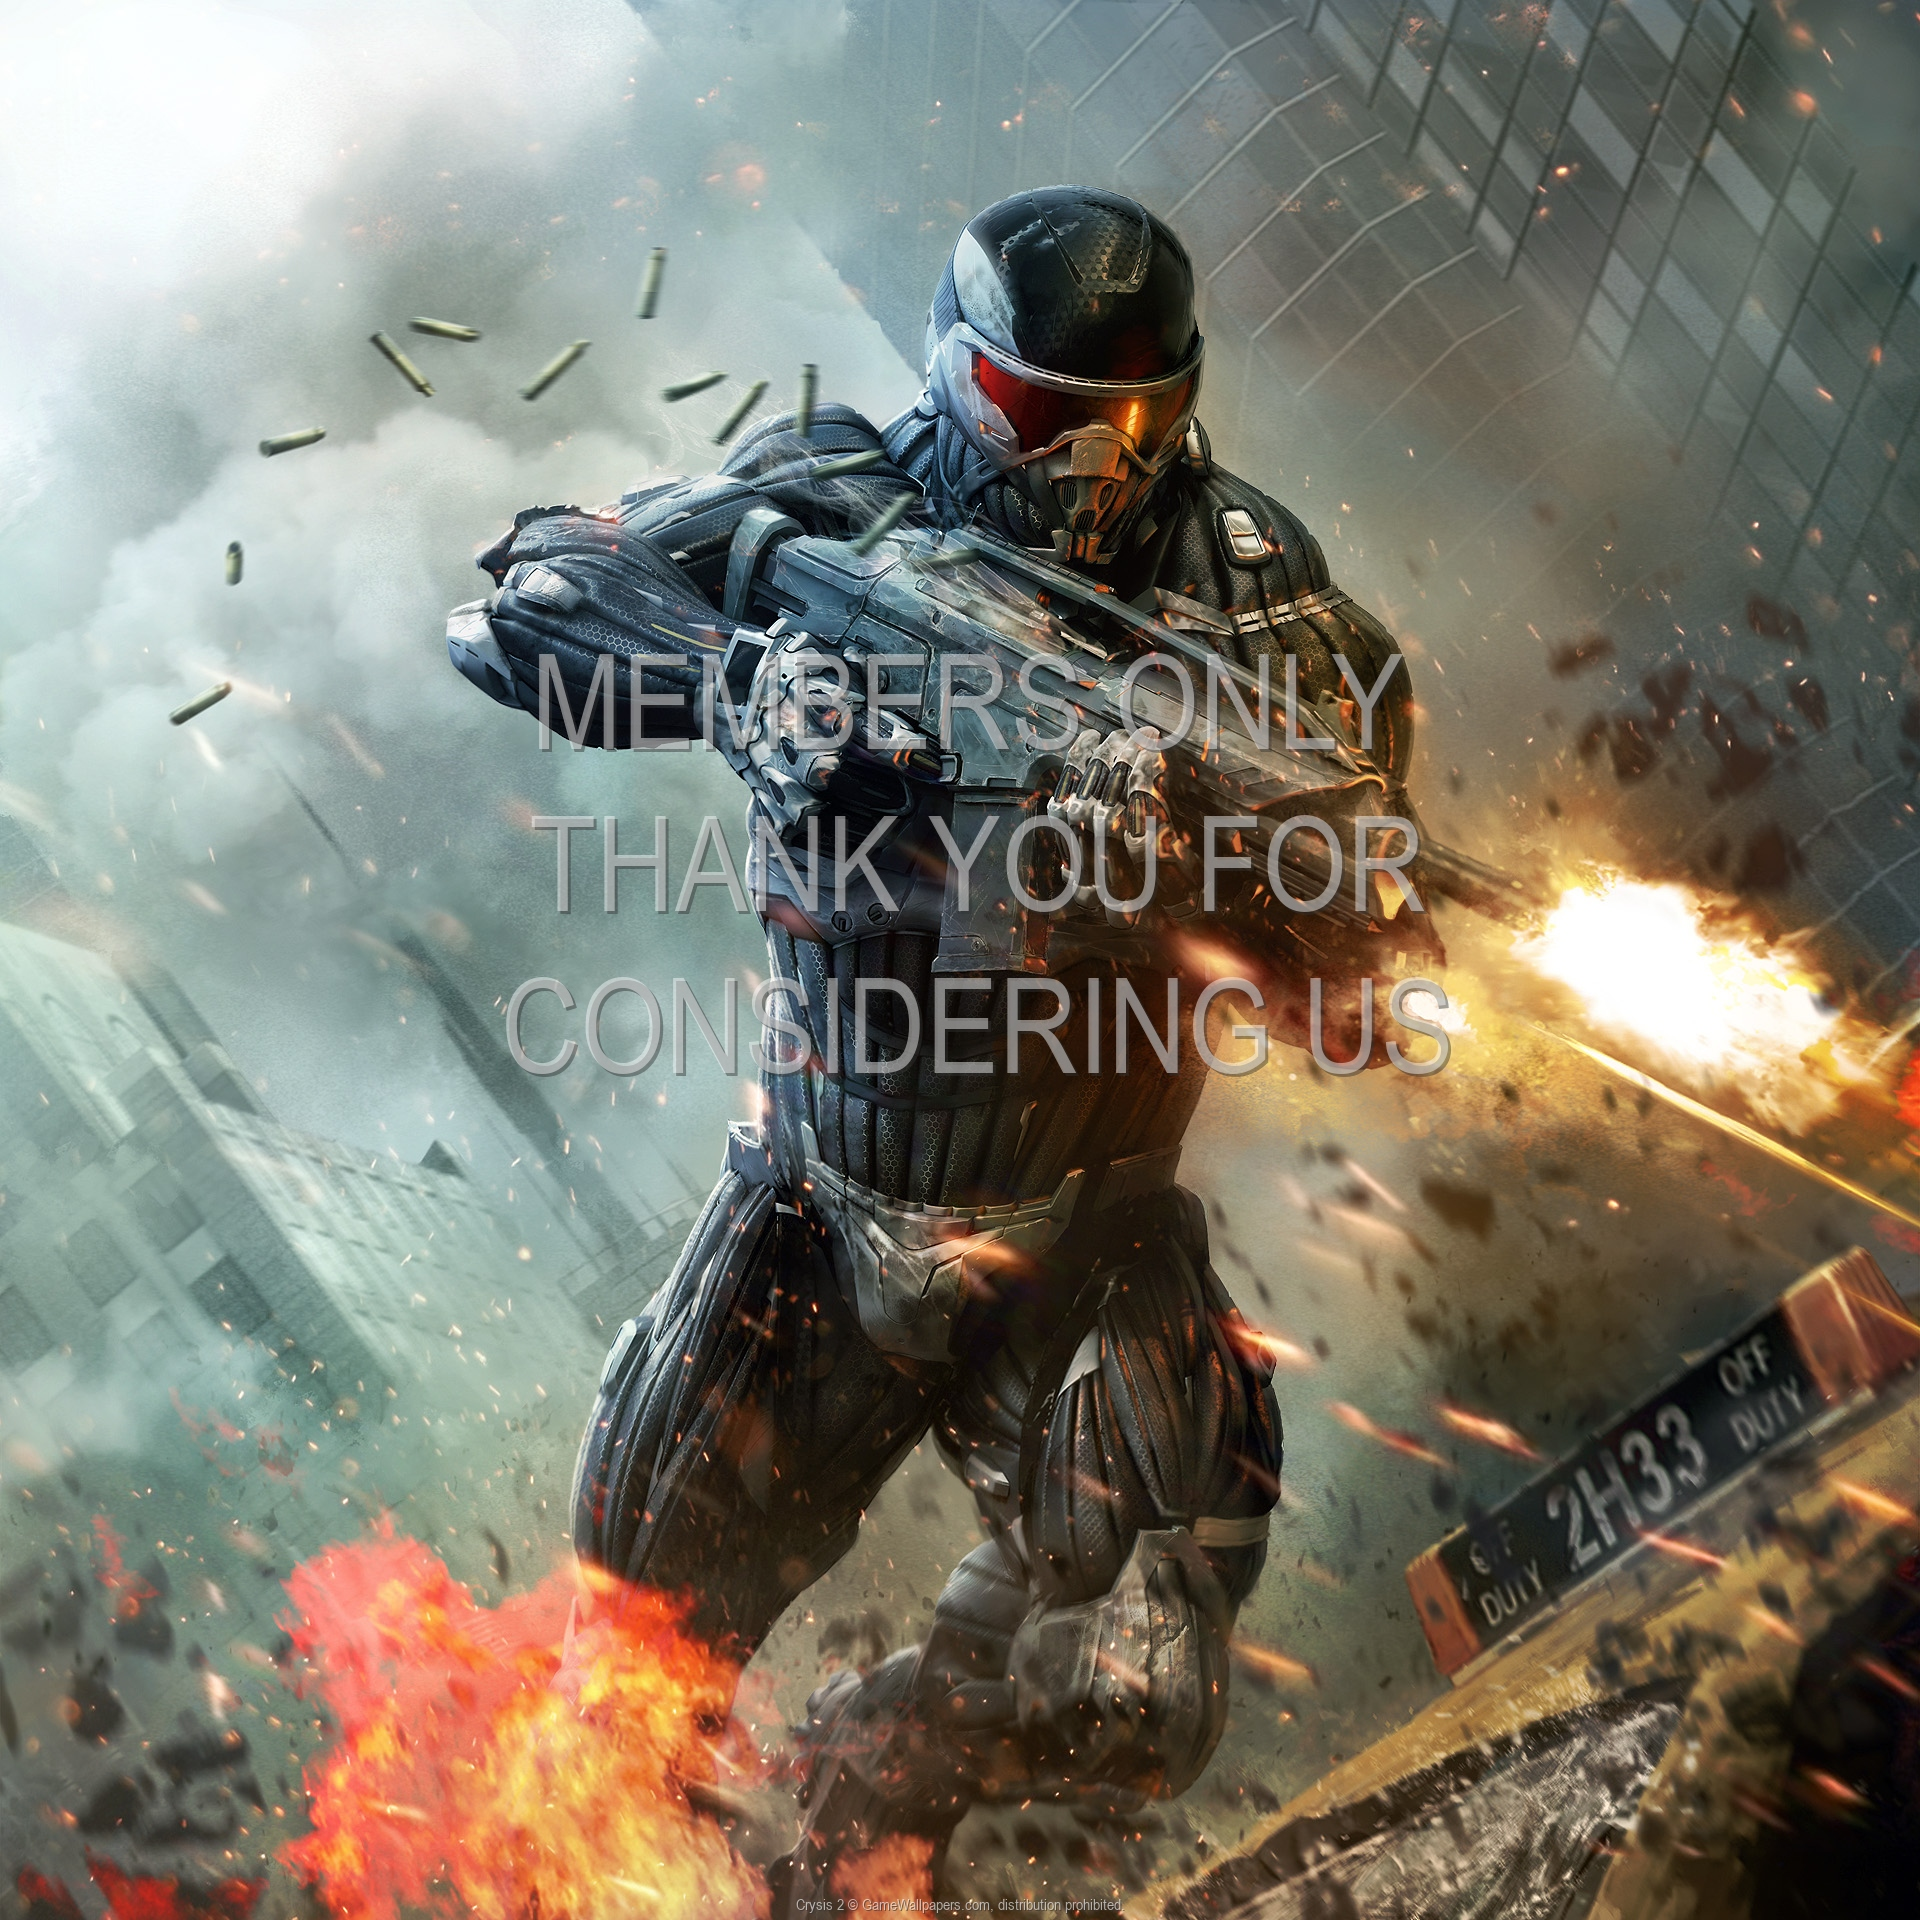 Crysis 2 1920x1080 Mobile wallpaper or background 03